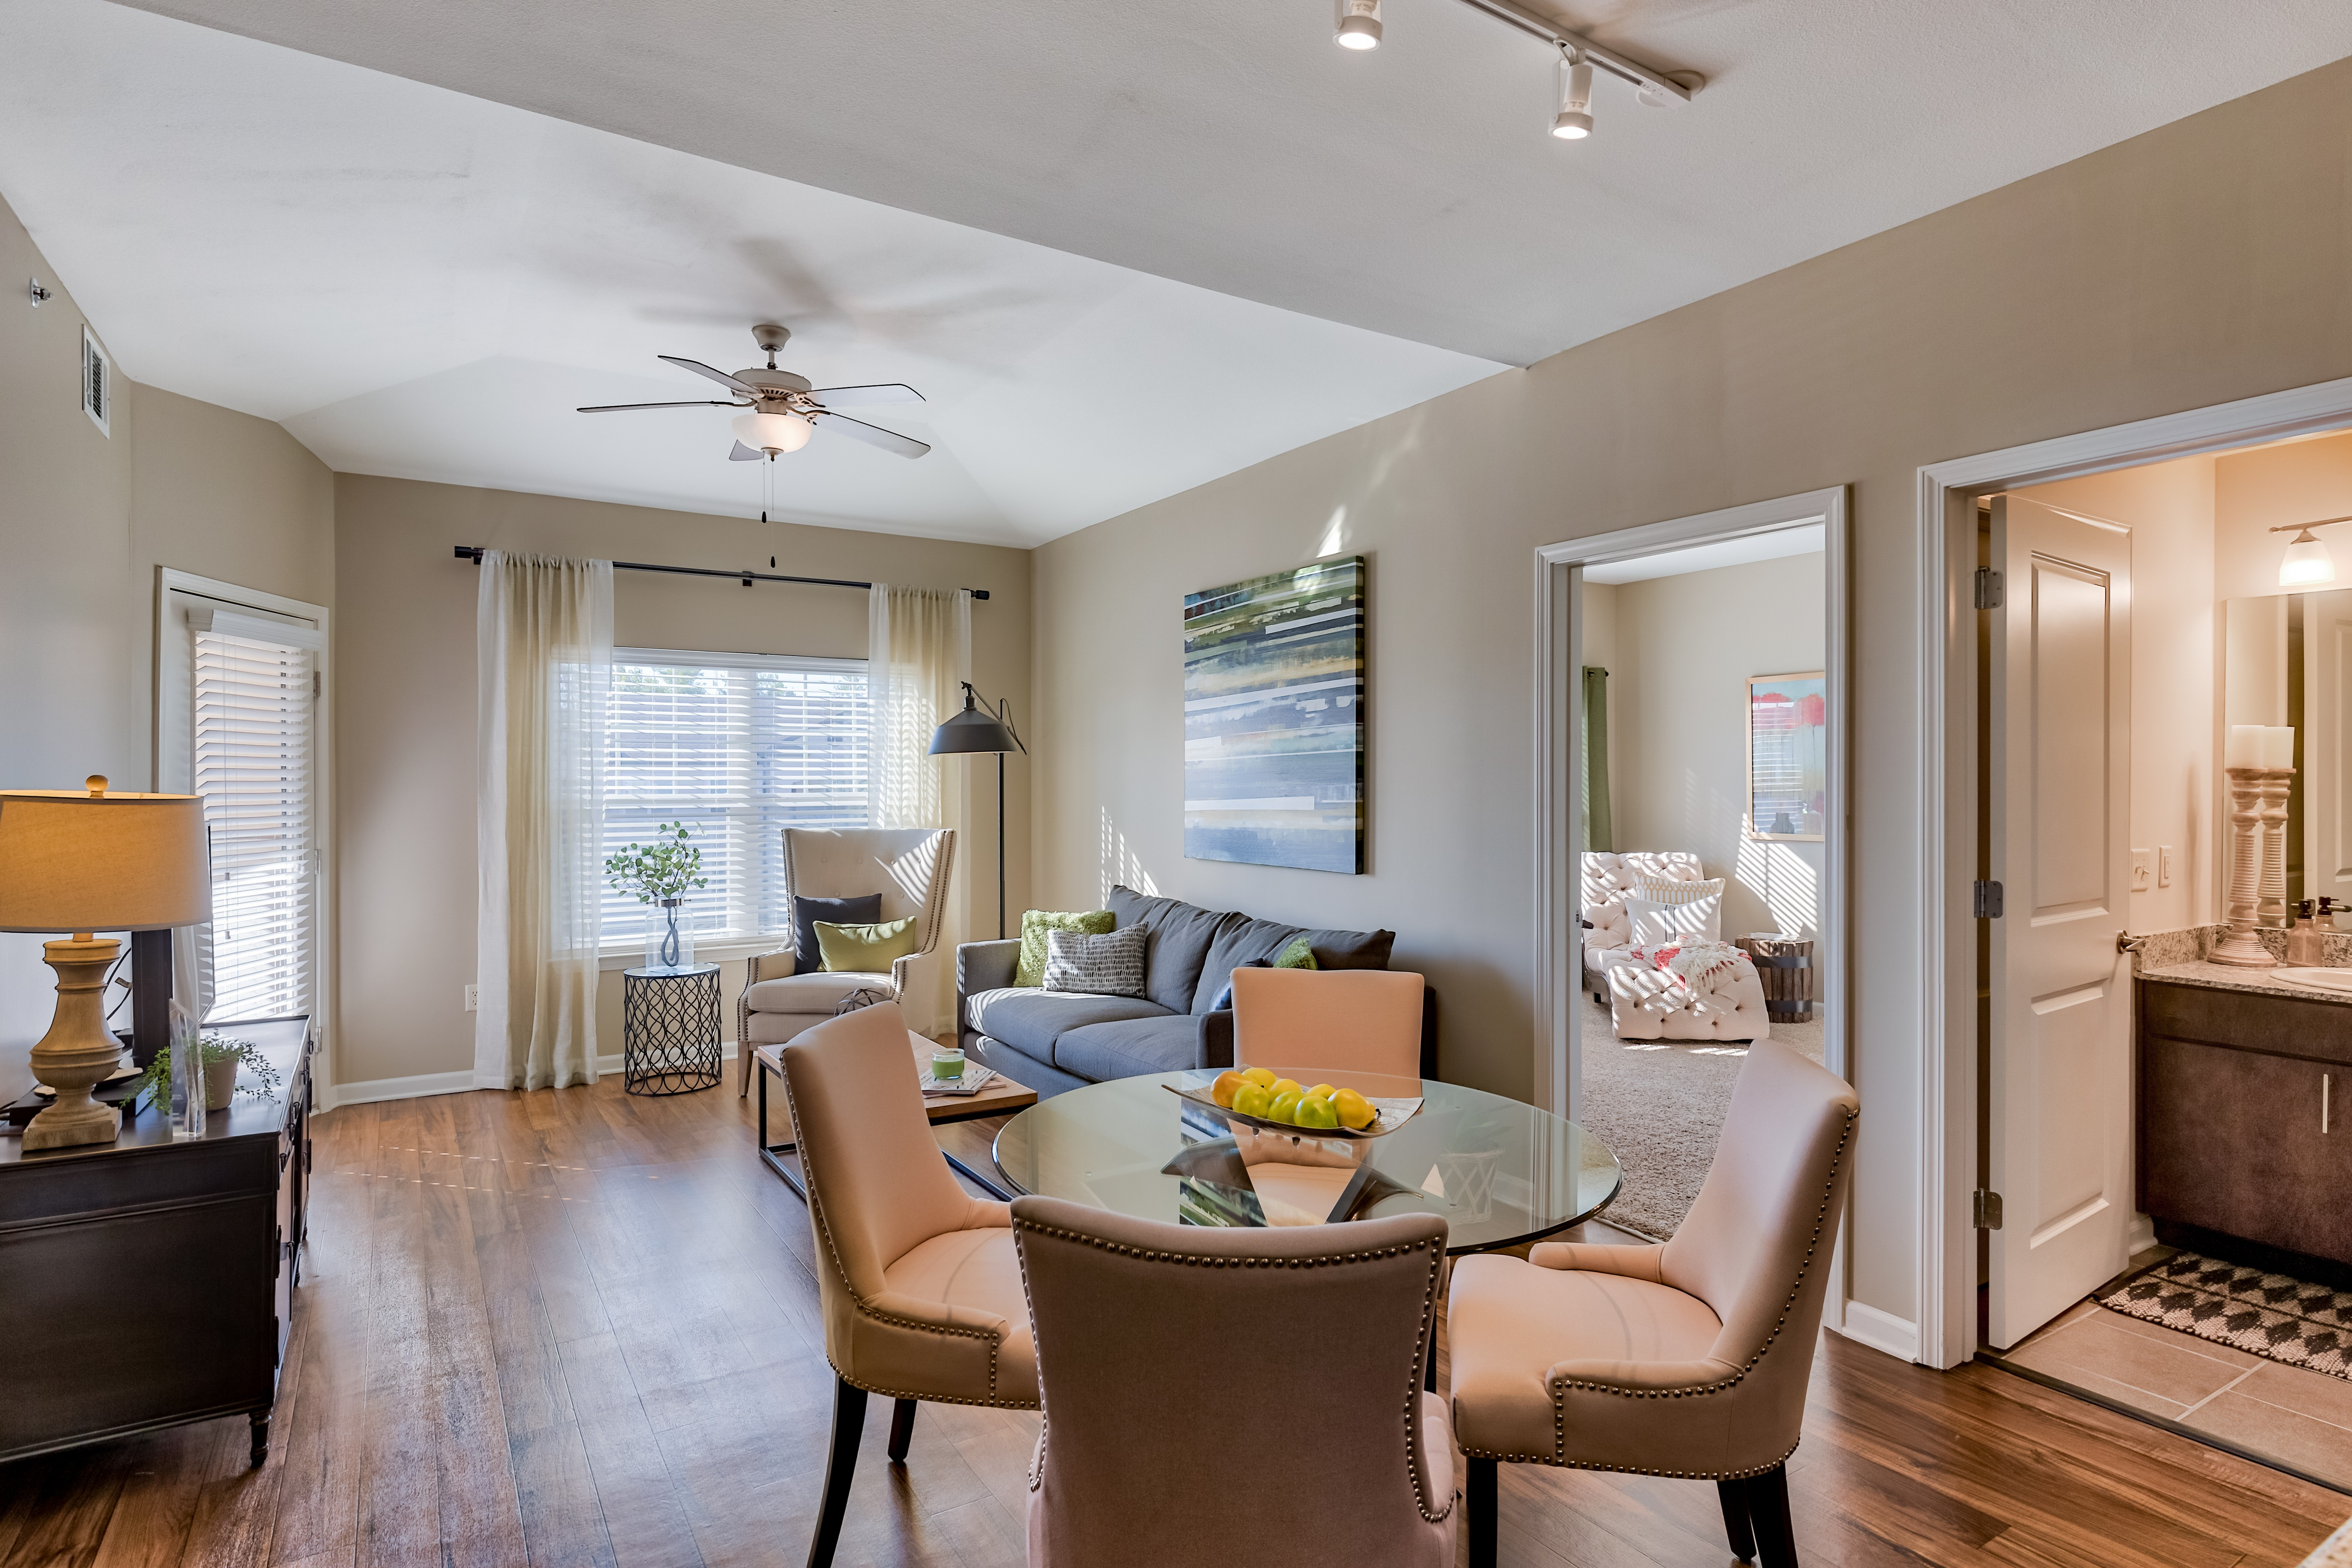 The Landing At Briarcliff Apartments rental